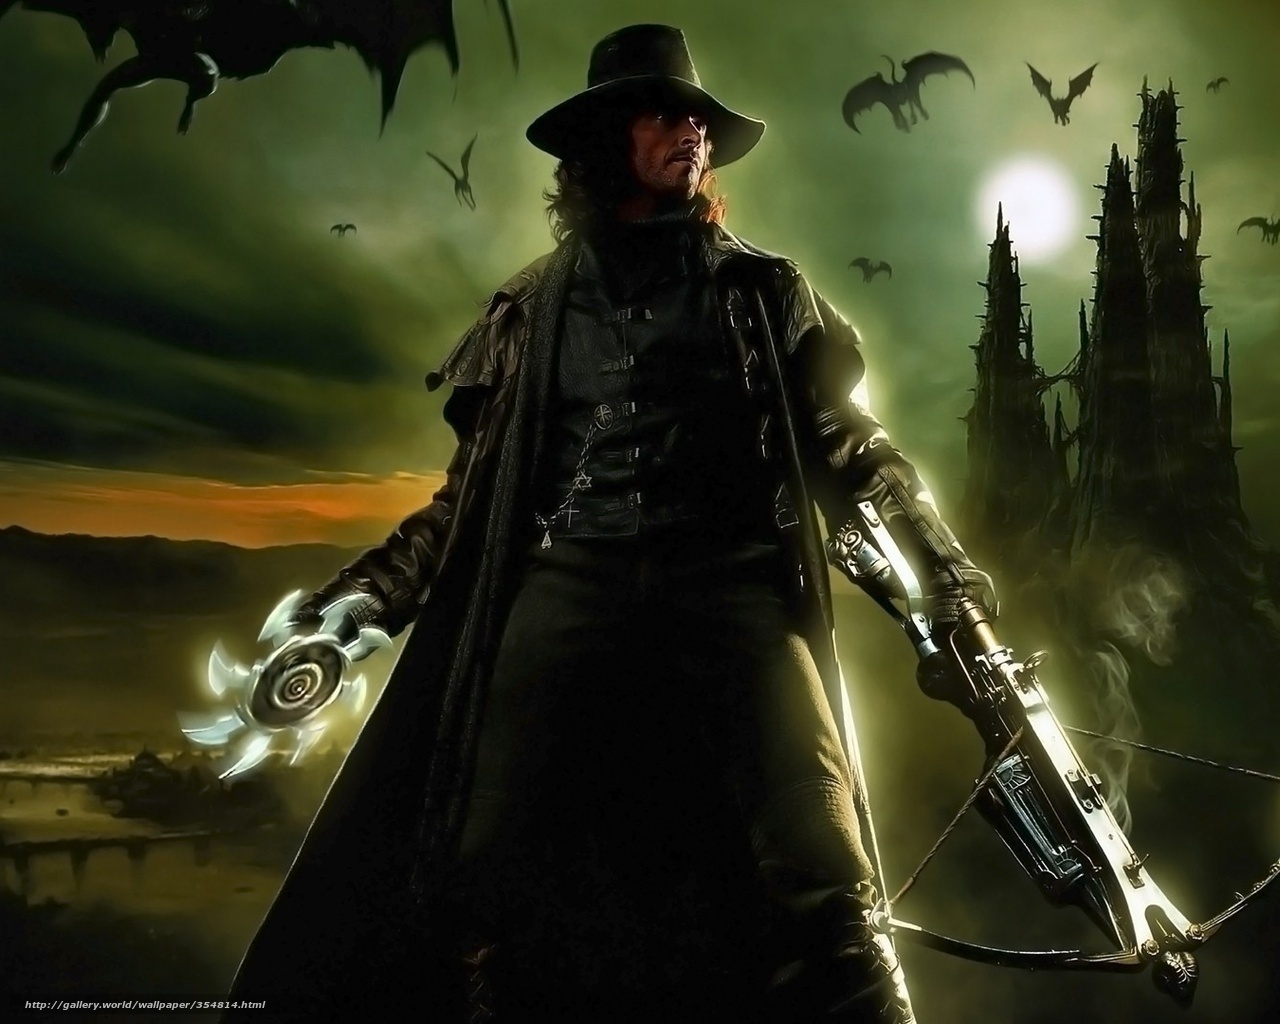 Van Helsing screenwriter talks about the Universal Monsters reboot